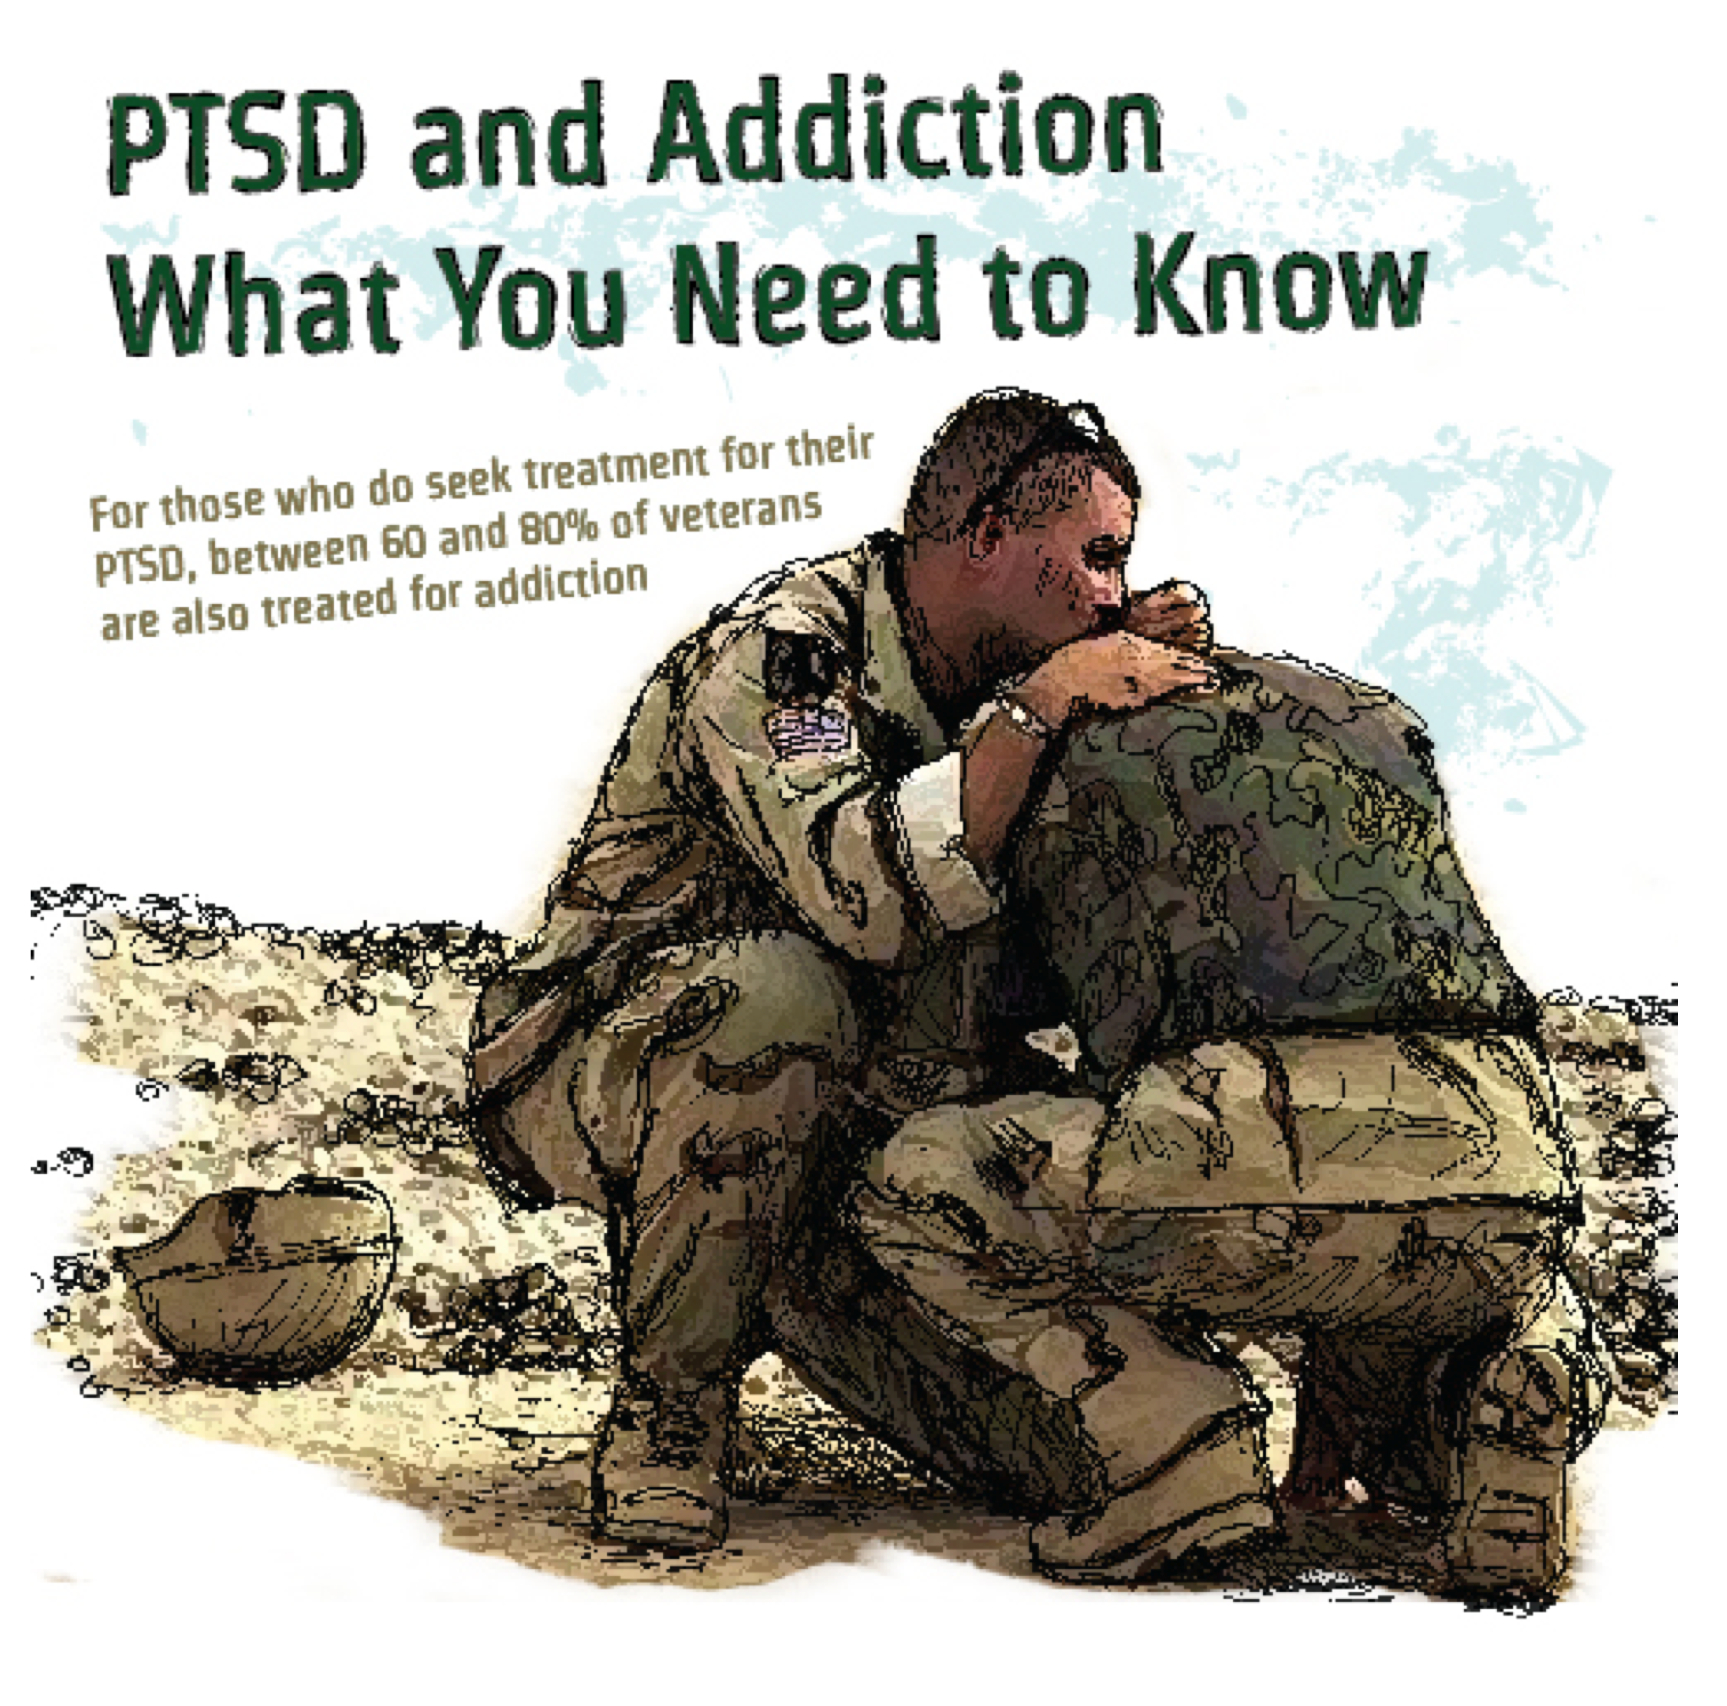 the post traumatic stress disorder ptsd among the vietnam veterans Epidemiology of ptsd from the national center for post-traumatic stress disorder, department of veterans affairs wwwptsdvagov jaimie l gradus, dsc, mph epidemiology of ptsd  estimated lifetime prevalence of ptsd among these veterans was 309% for men and 269.